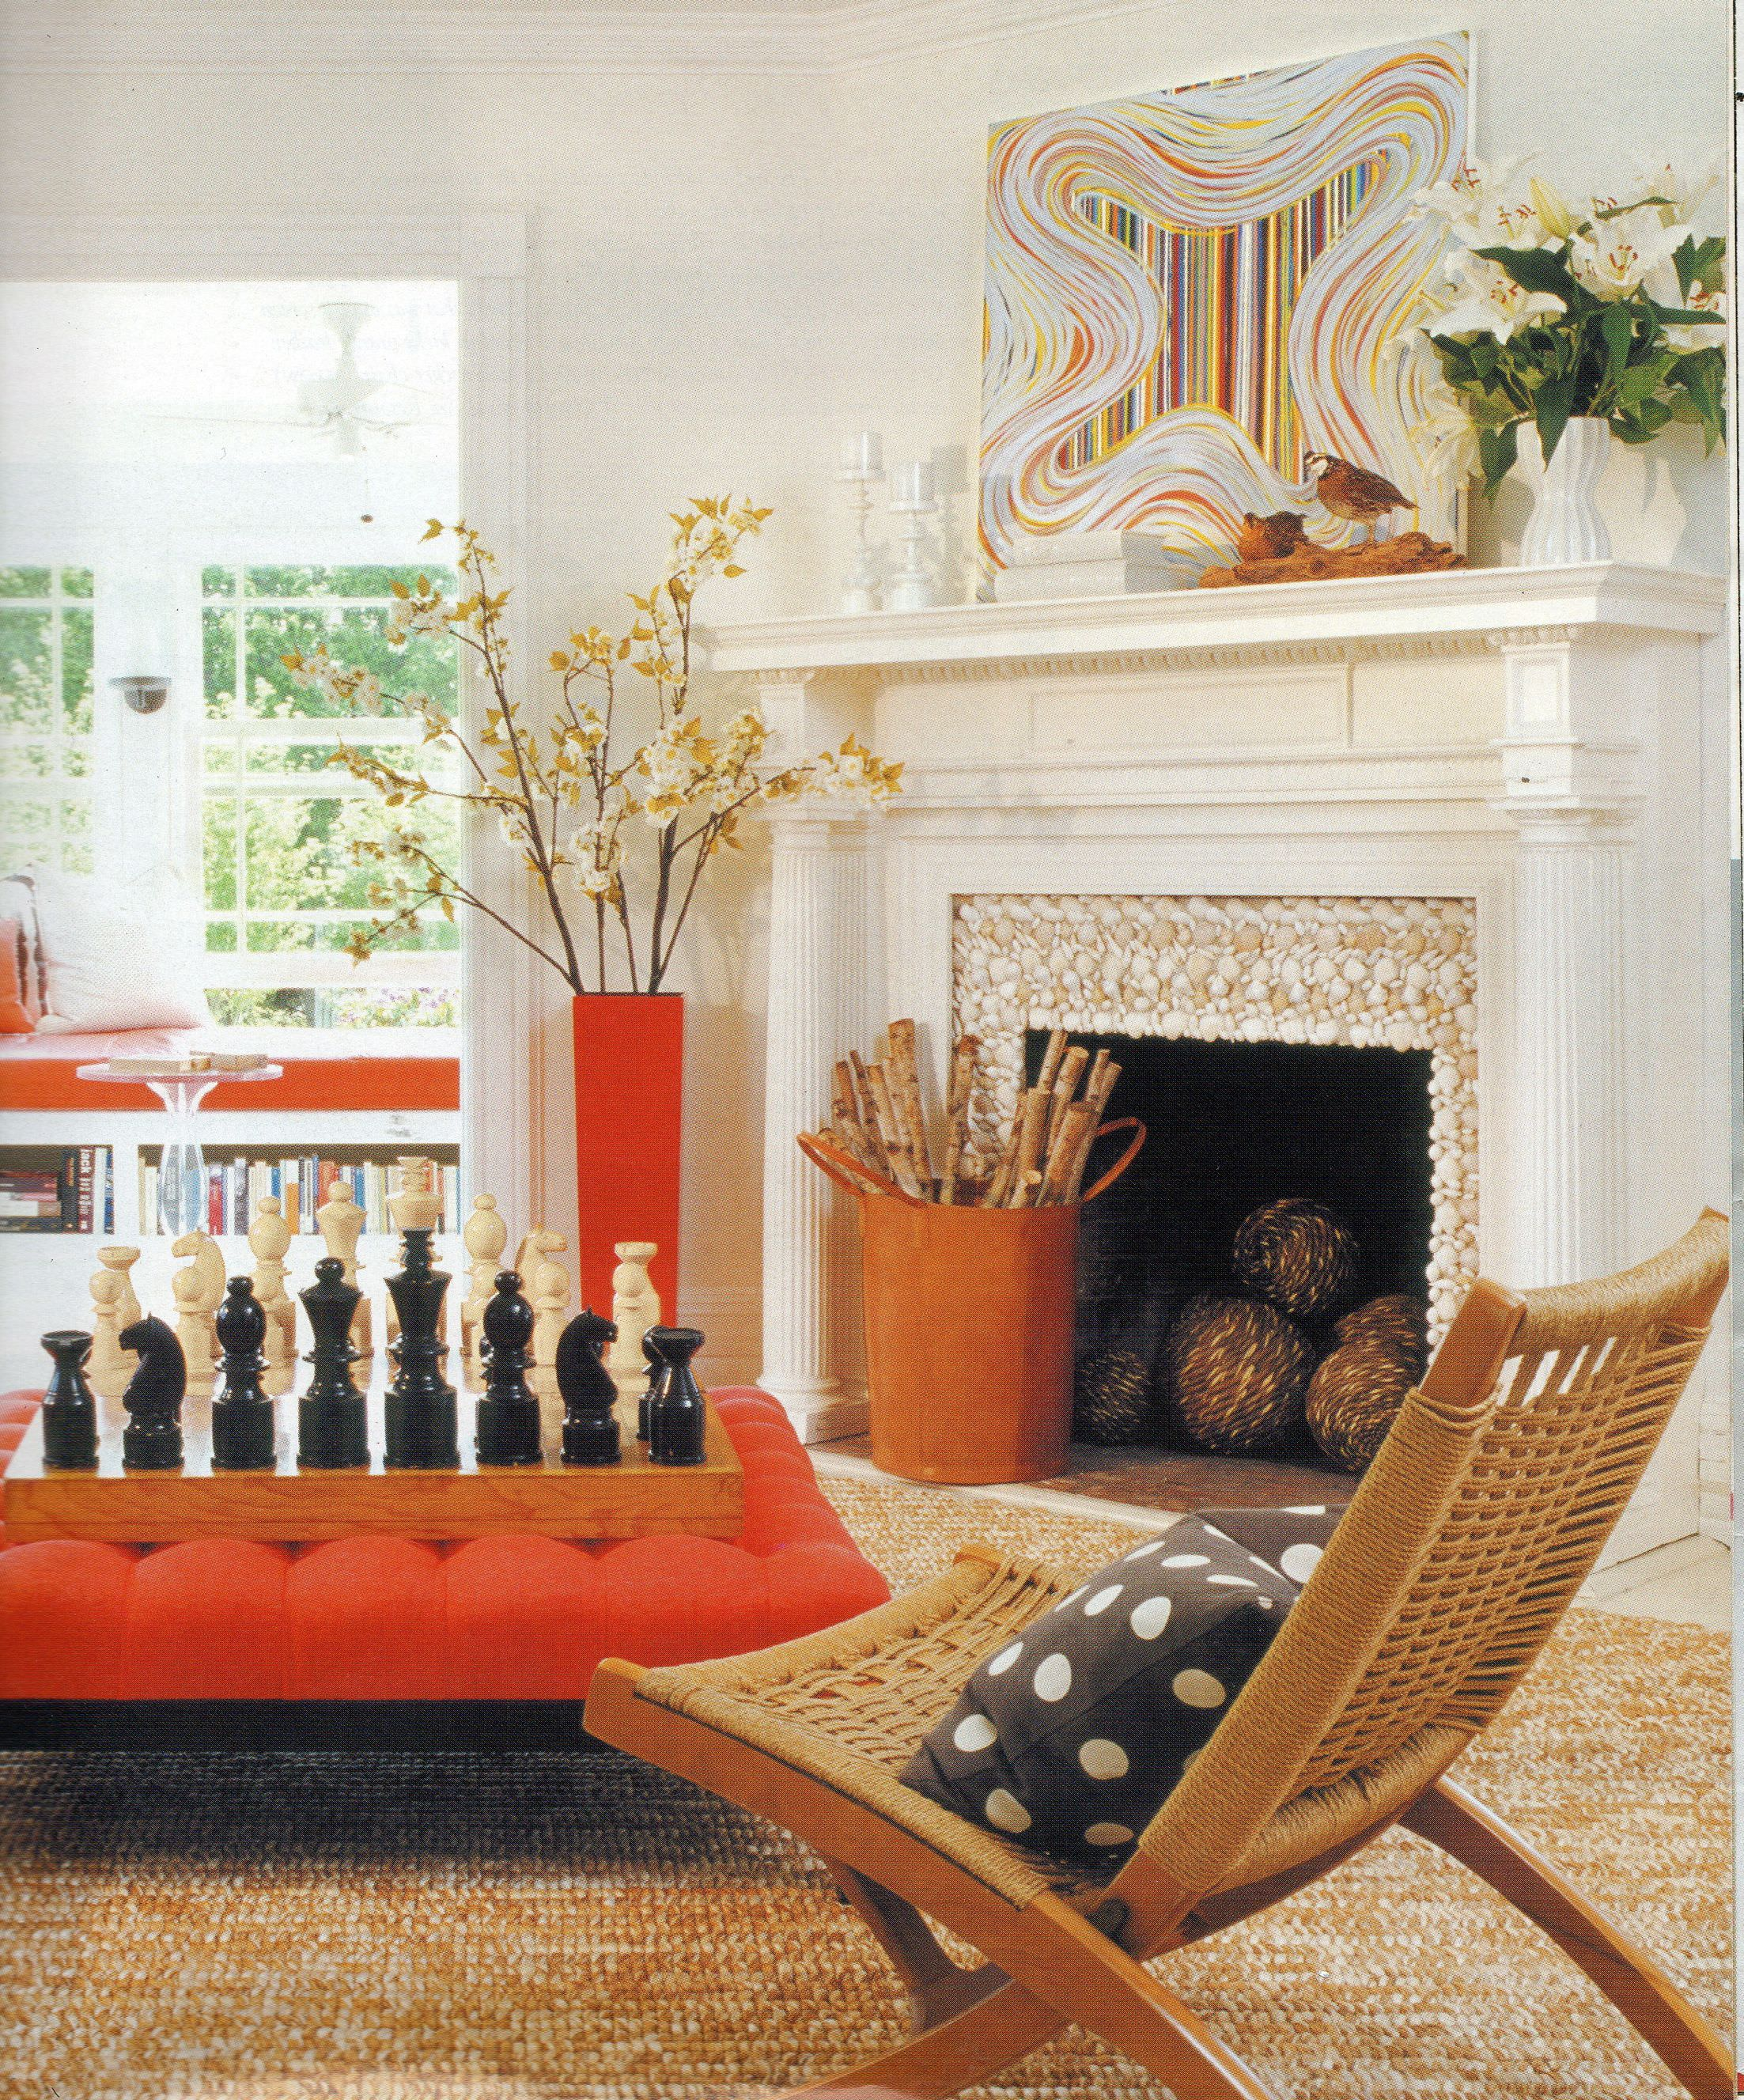 The delicate color selection of this living room departs from common living room color schemes by